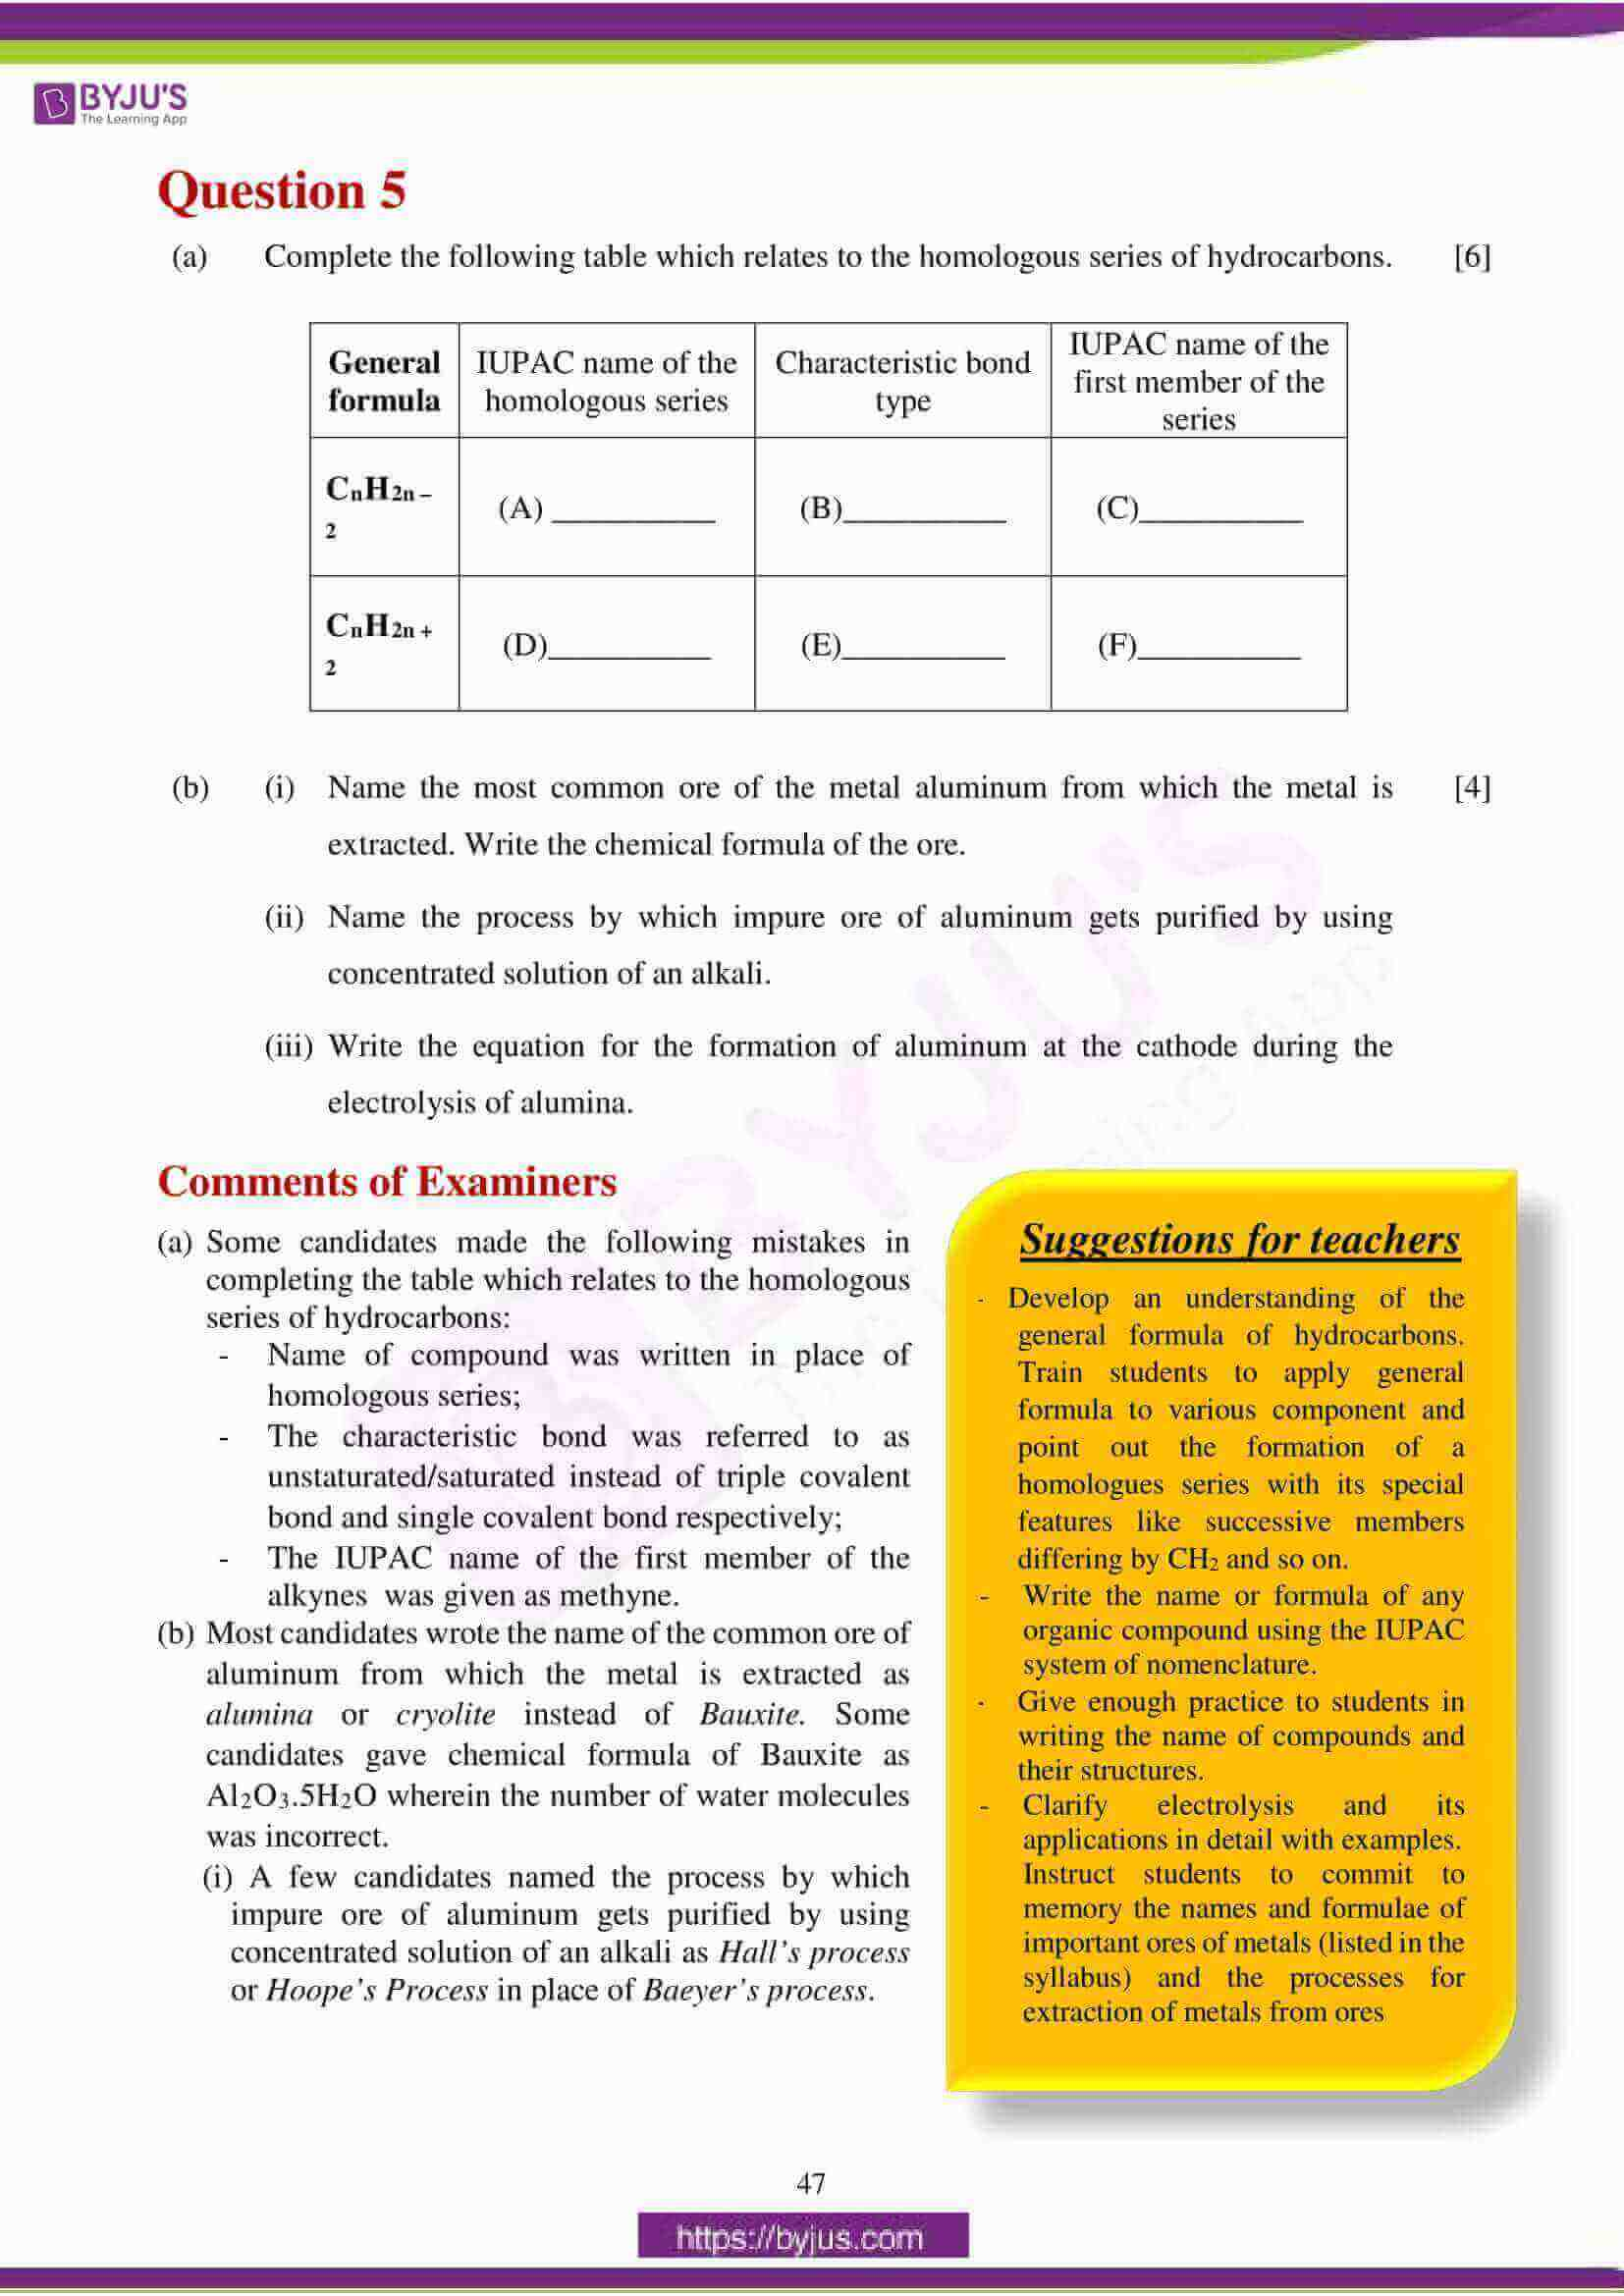 icse class 10 chemistry question paper solution 2018 14